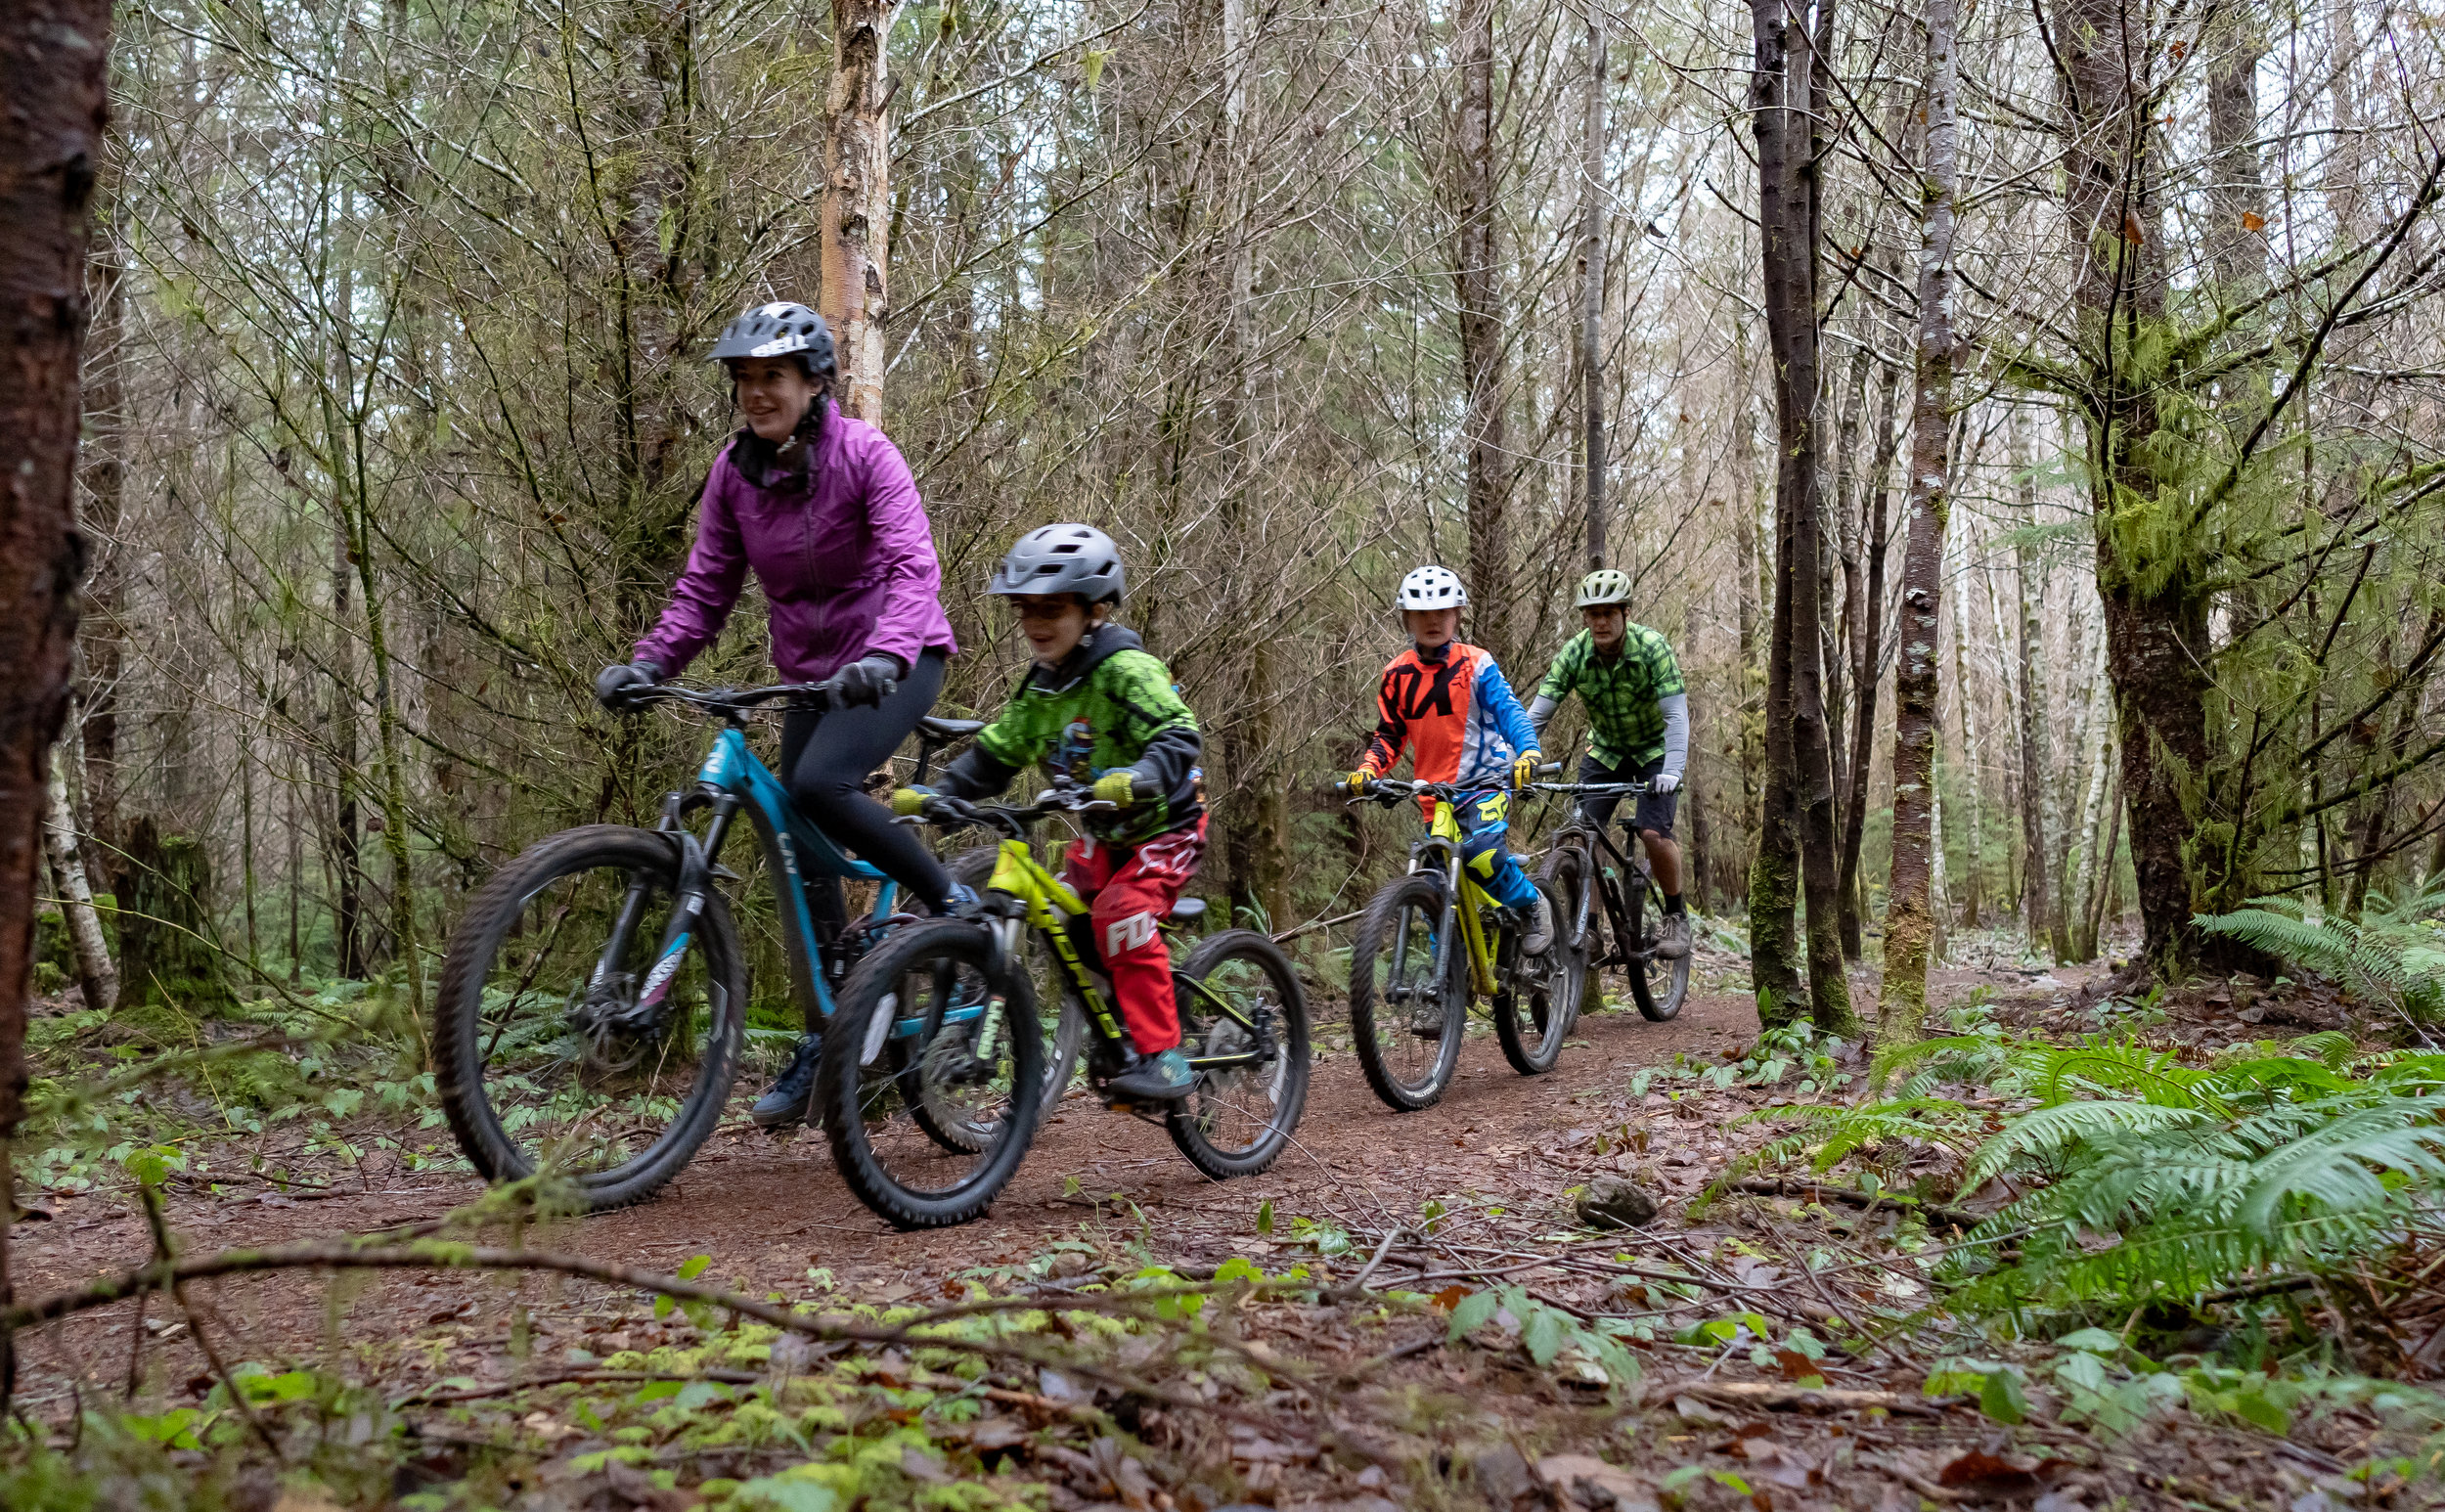 We will build a variety of mountain biking trails for everyone.